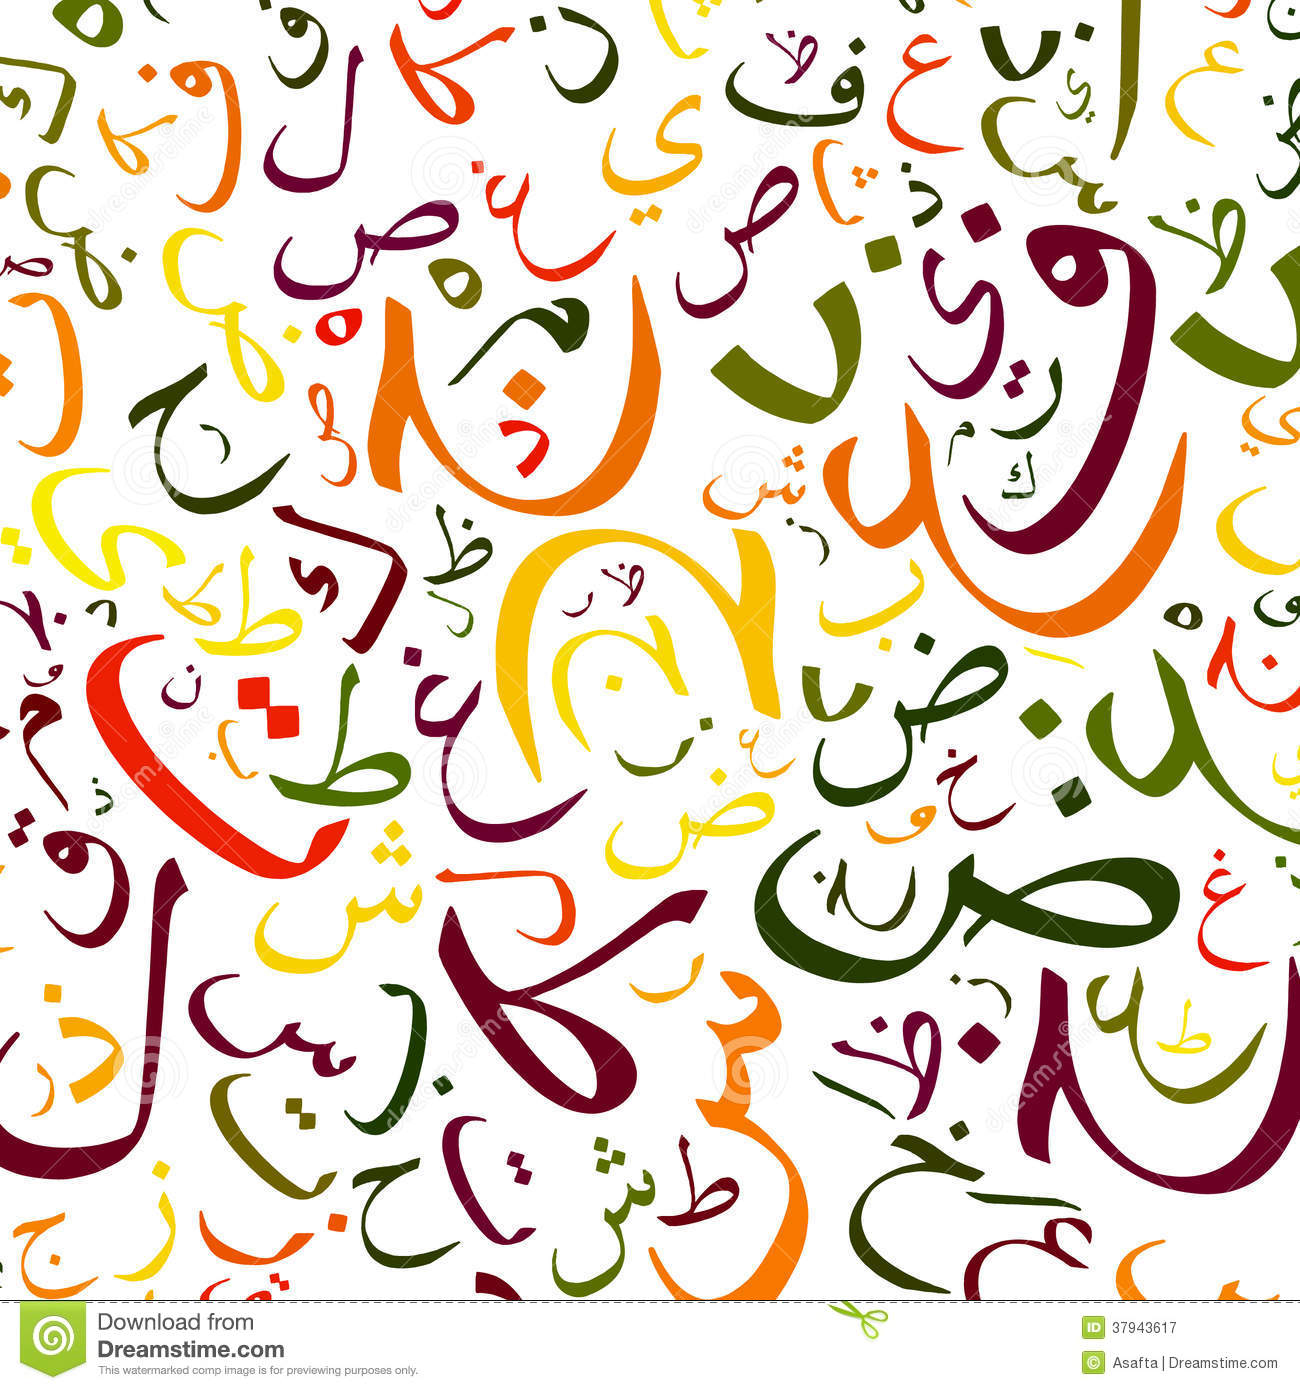 Arabic alphabet background stock illustration. Image of ...